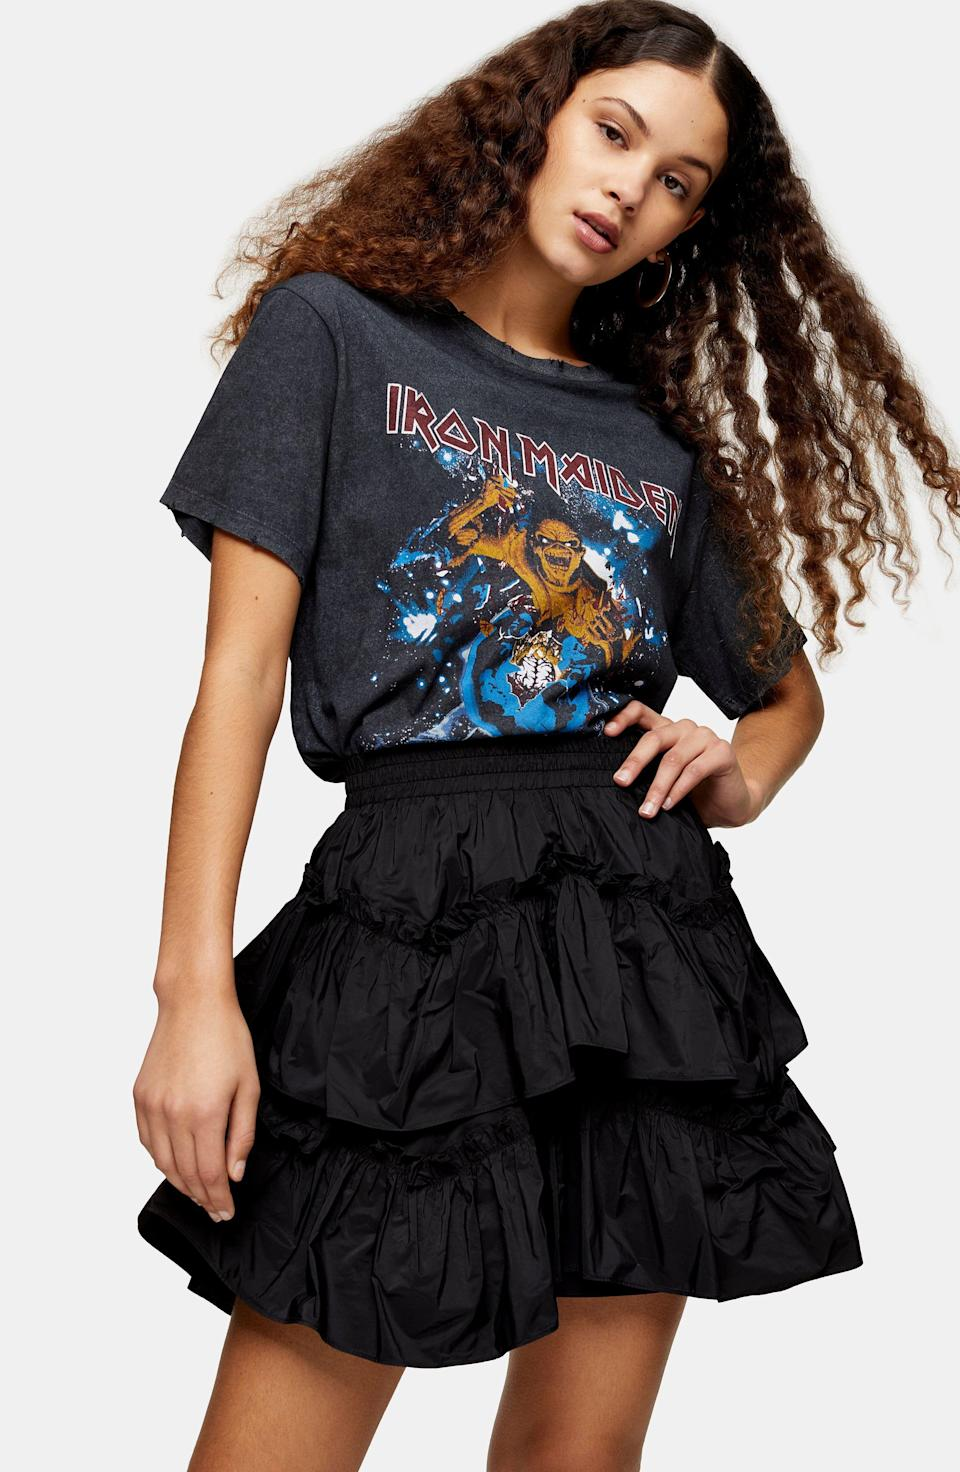 """<p><strong>Topshop</strong></p><p>nordstrom.com</p><p><strong>$27.50</strong></p><p><a href=""""https://go.redirectingat.com?id=74968X1596630&url=https%3A%2F%2Fshop.nordstrom.com%2Fs%2Ftopshop-taffeta-ruffle-miniskirt%2F5604877&sref=https%3A%2F%2Fwww.cosmopolitan.com%2Fstyle-beauty%2Ffashion%2Fg30933395%2Ffall-fashion-trends-2020%2F"""" rel=""""nofollow noopener"""" target=""""_blank"""" data-ylk=""""slk:Shop Now"""" class=""""link rapid-noclick-resp"""">Shop Now</a></p><p>If you want something a little more casual, try a skirt with a graphic tee. </p>"""